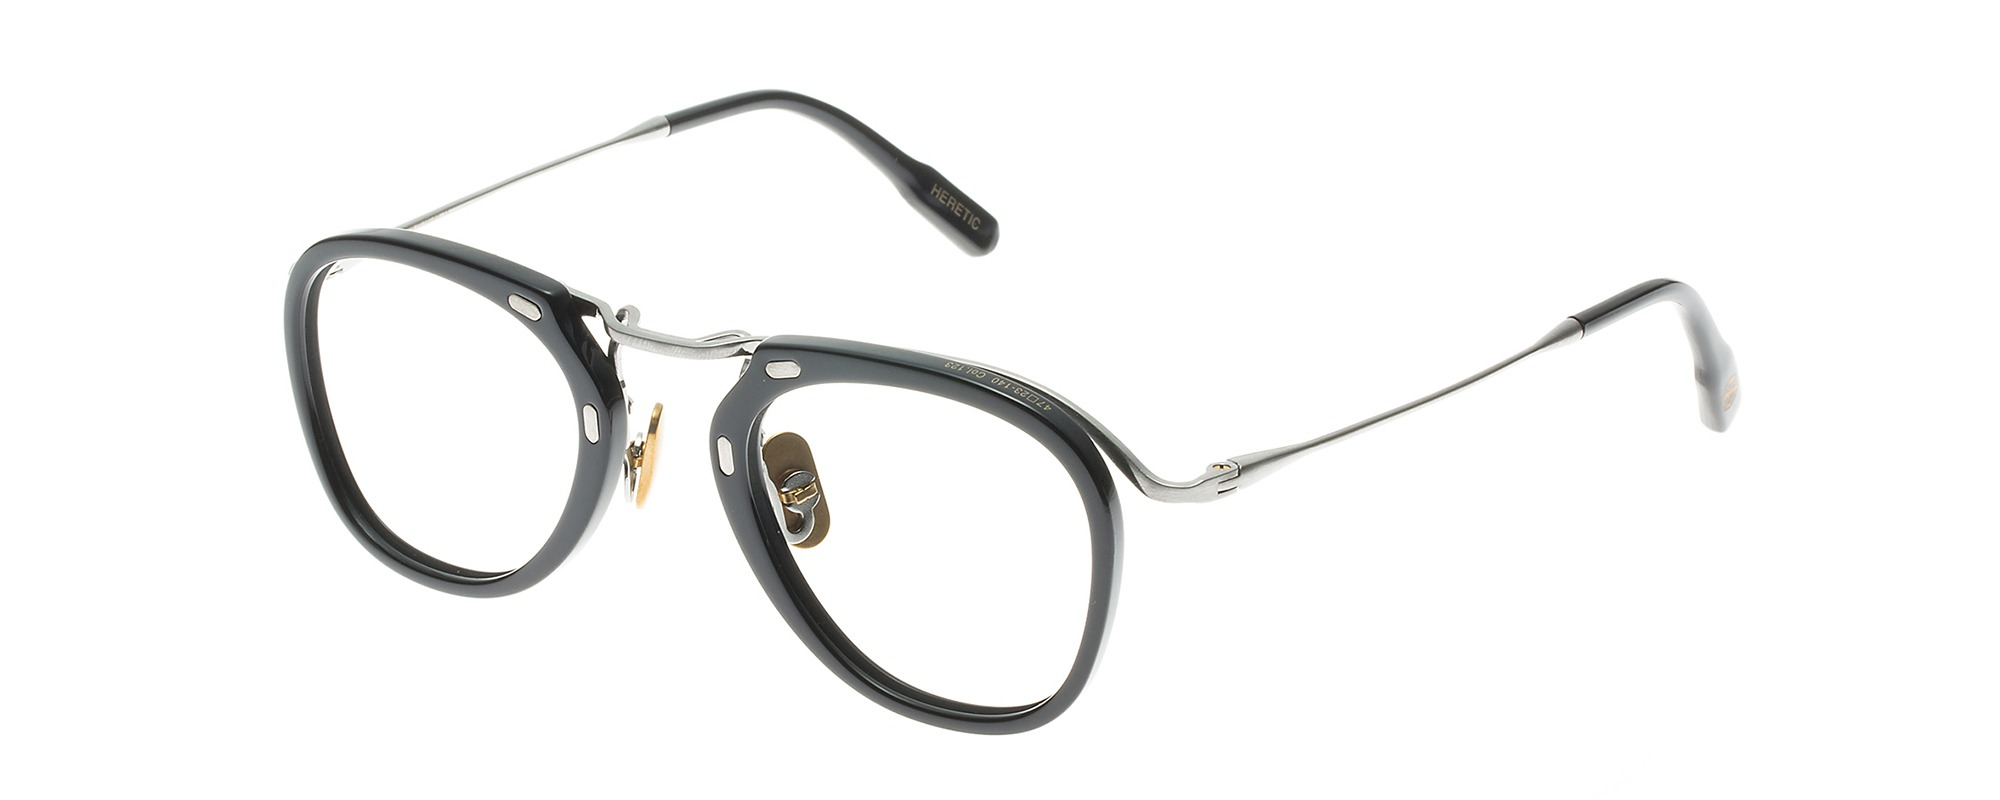 OG × OLIVER GOLDSMITH HERETIC ヘレティック